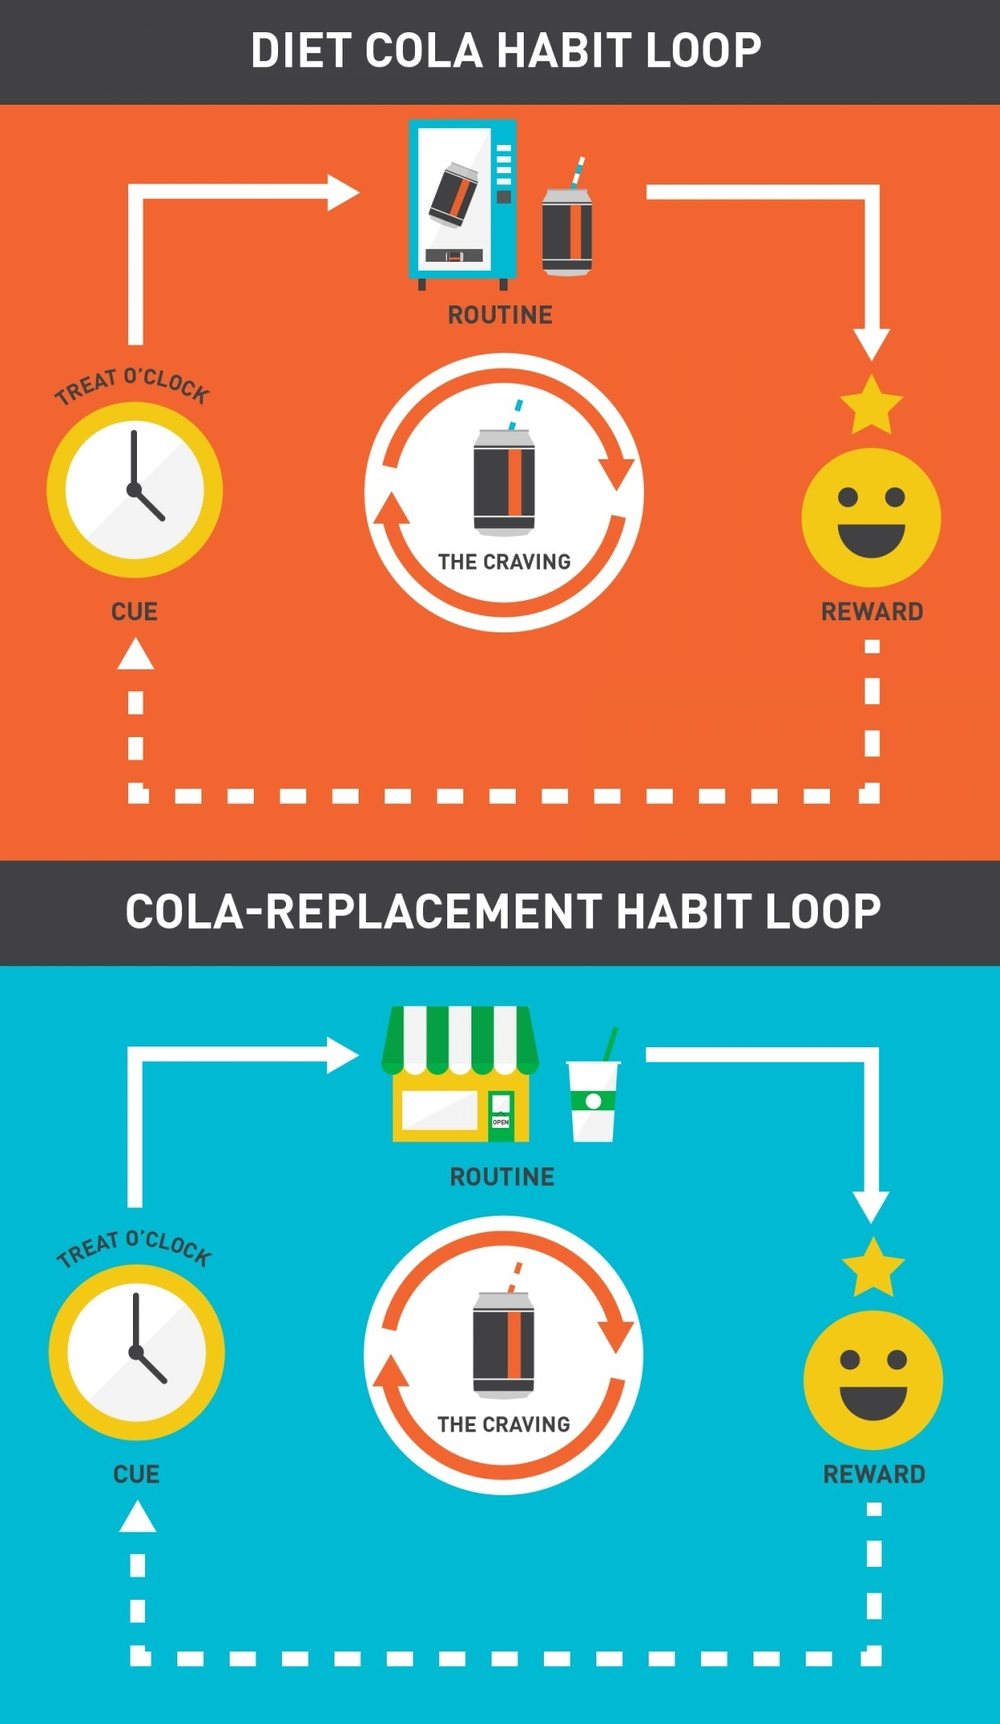 More on the habit loop